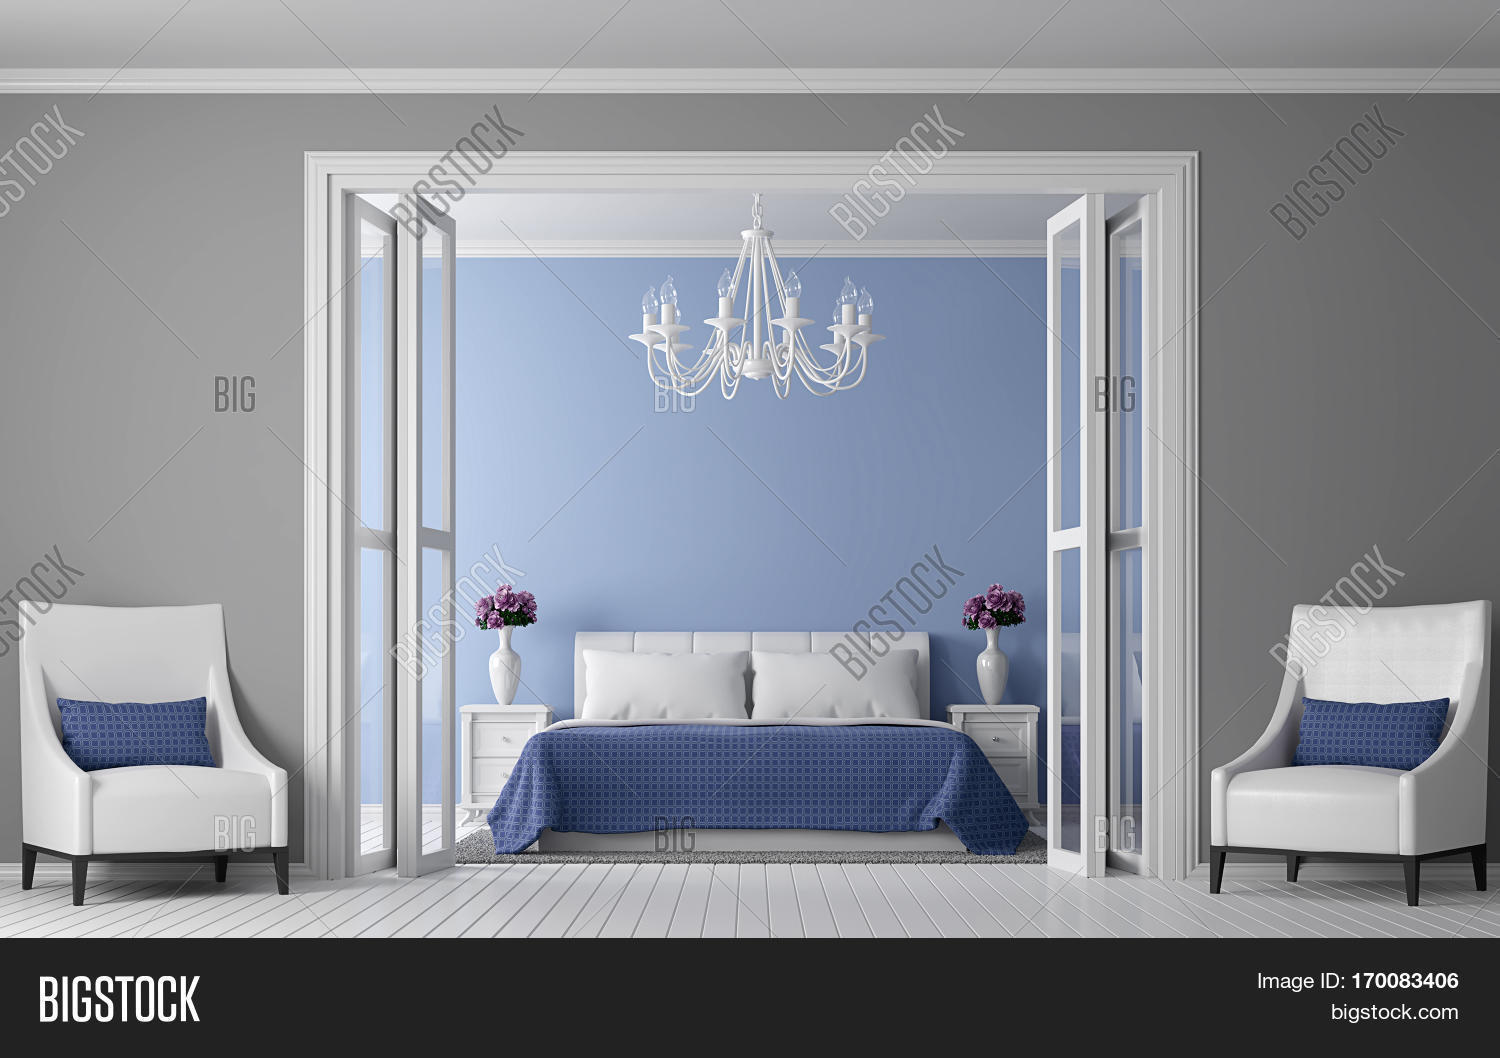 modern vintage bedroom interior 3d rendering image view from front of roomthere are